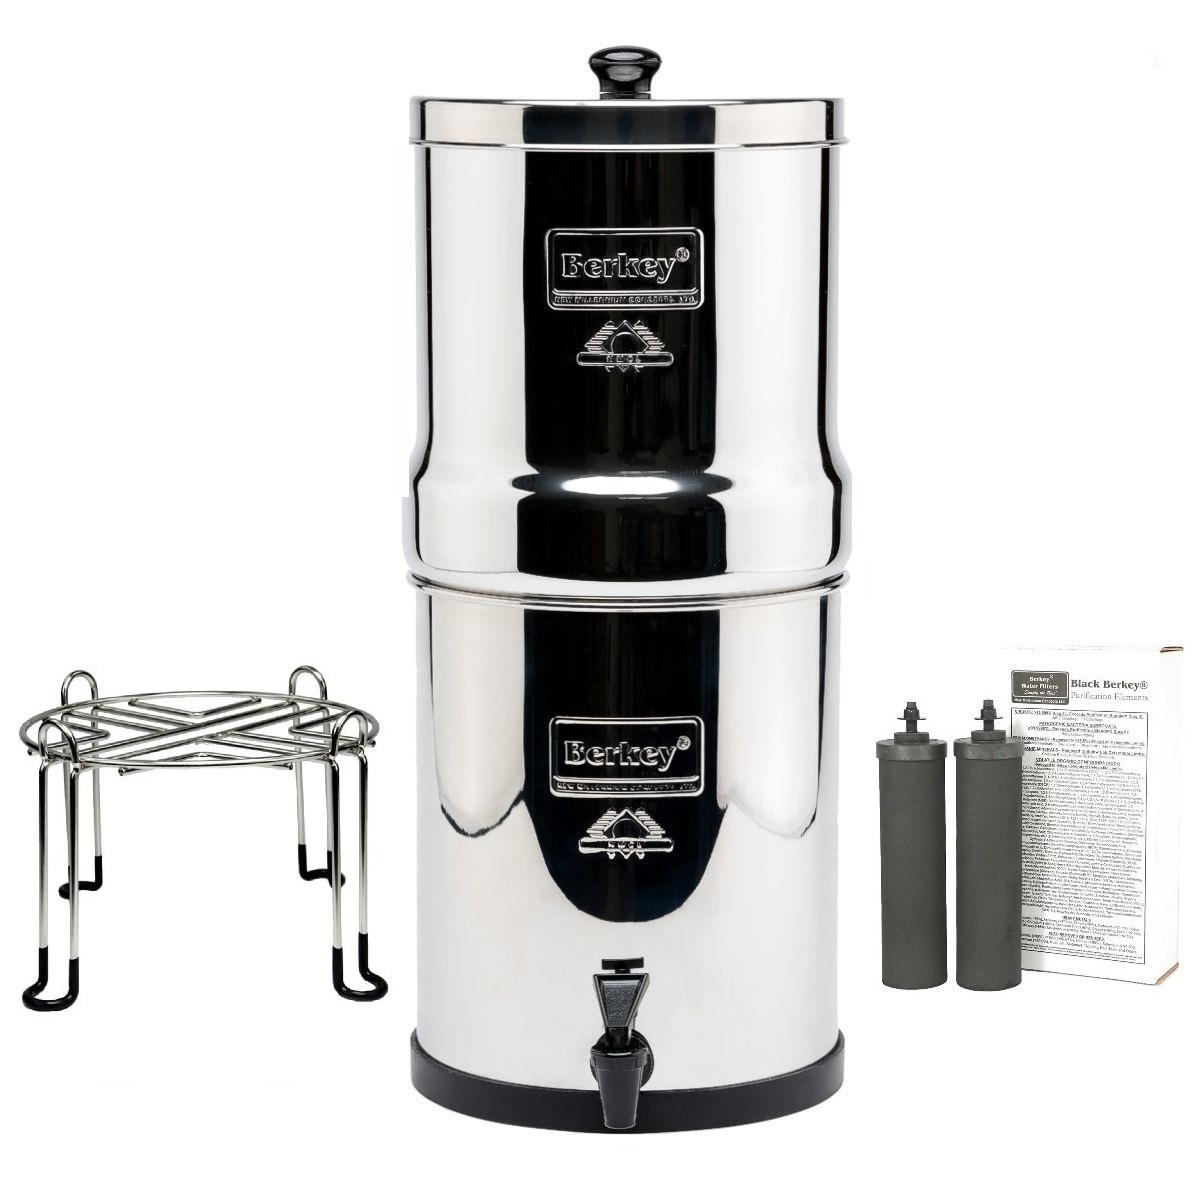 Imperial Berkey Water Purifier with 2 Black Filters and Wirestand Accessory